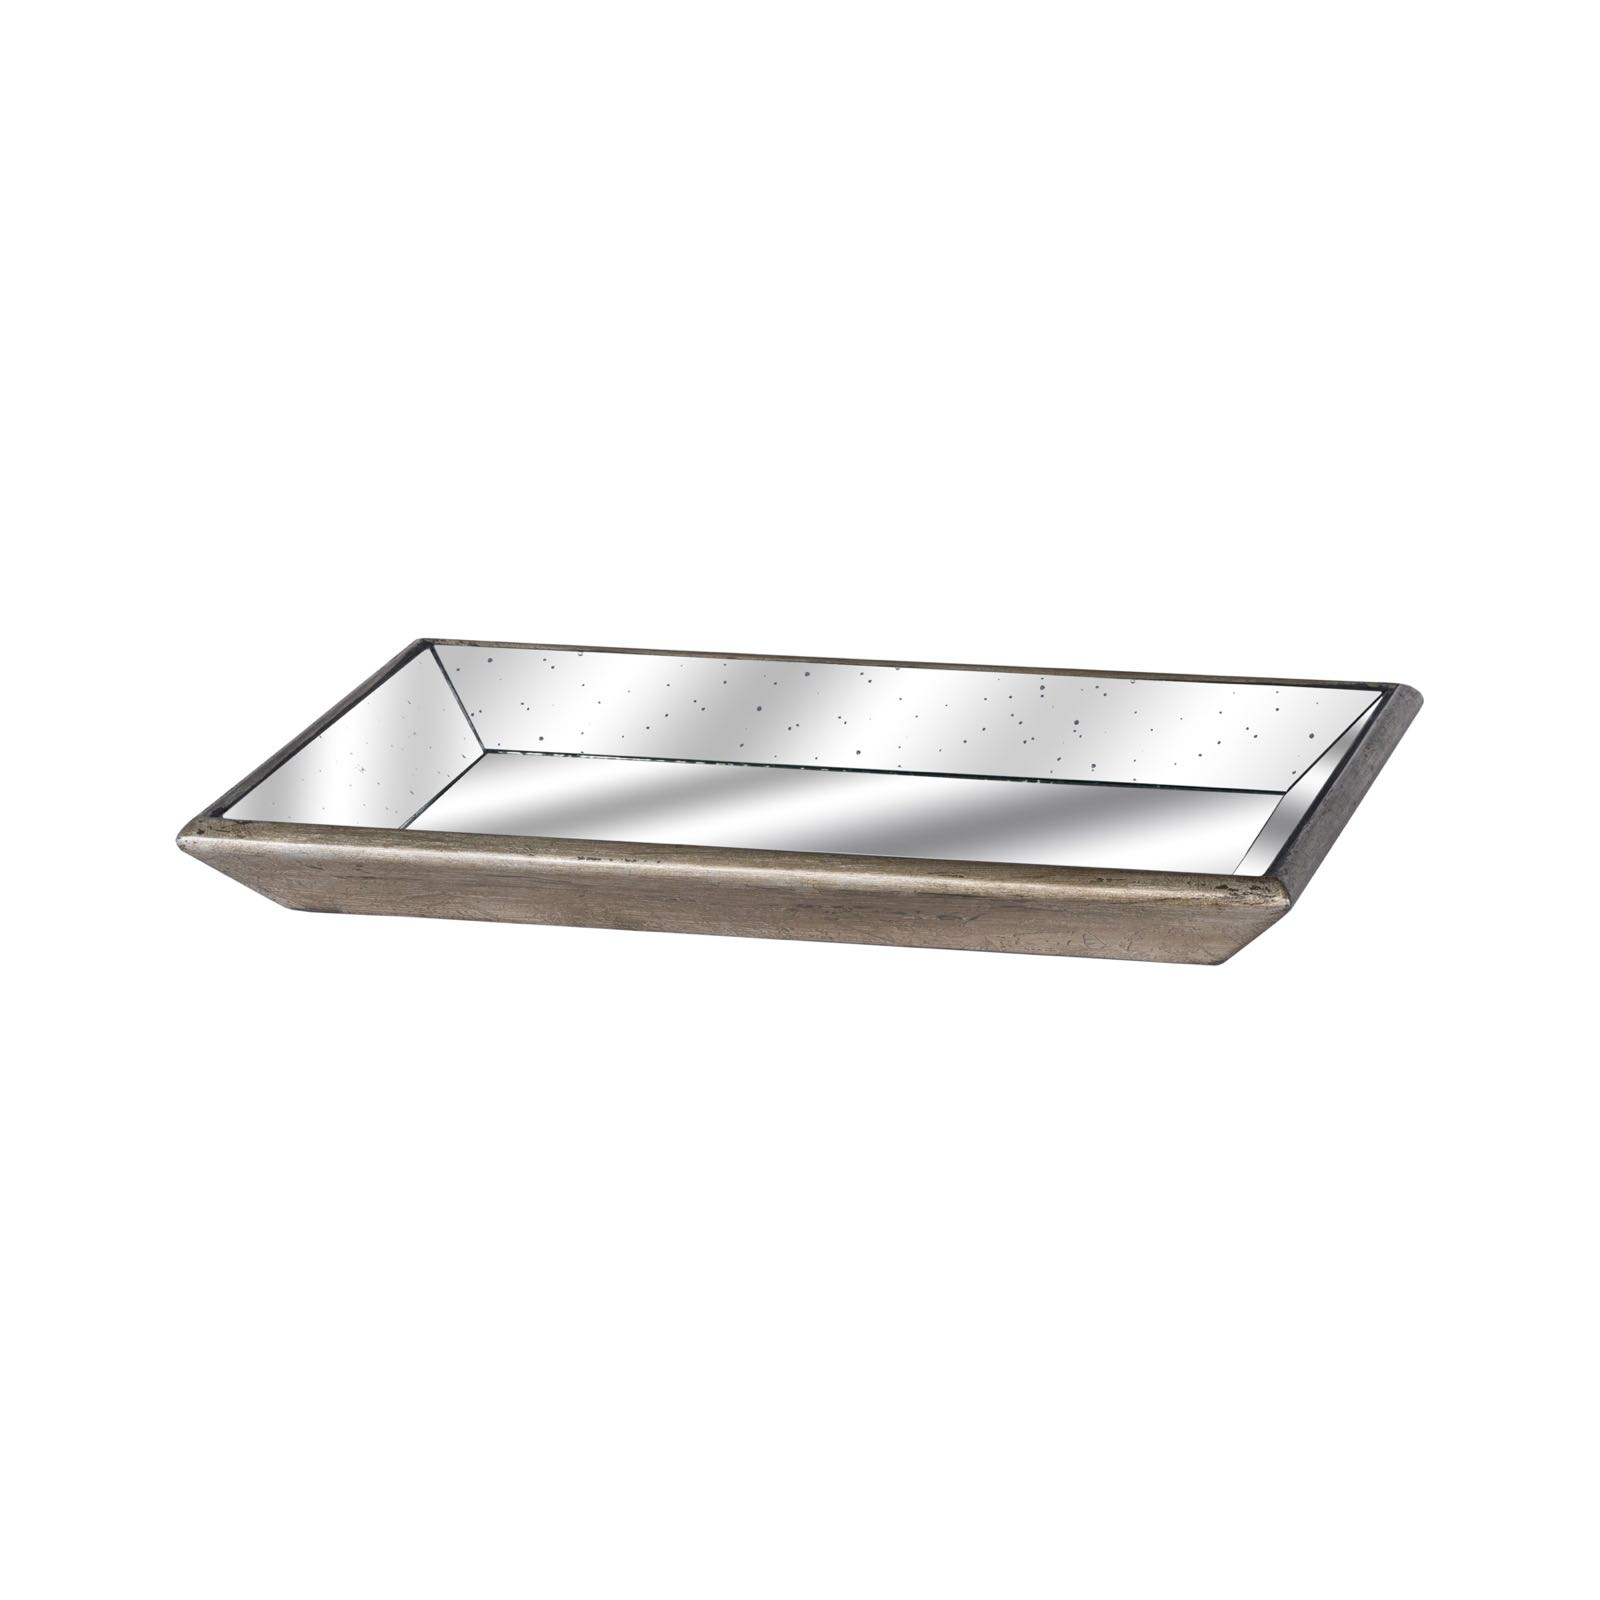 Distressed mirrored tray with wooden detail 49cm x 5cm x 32cm